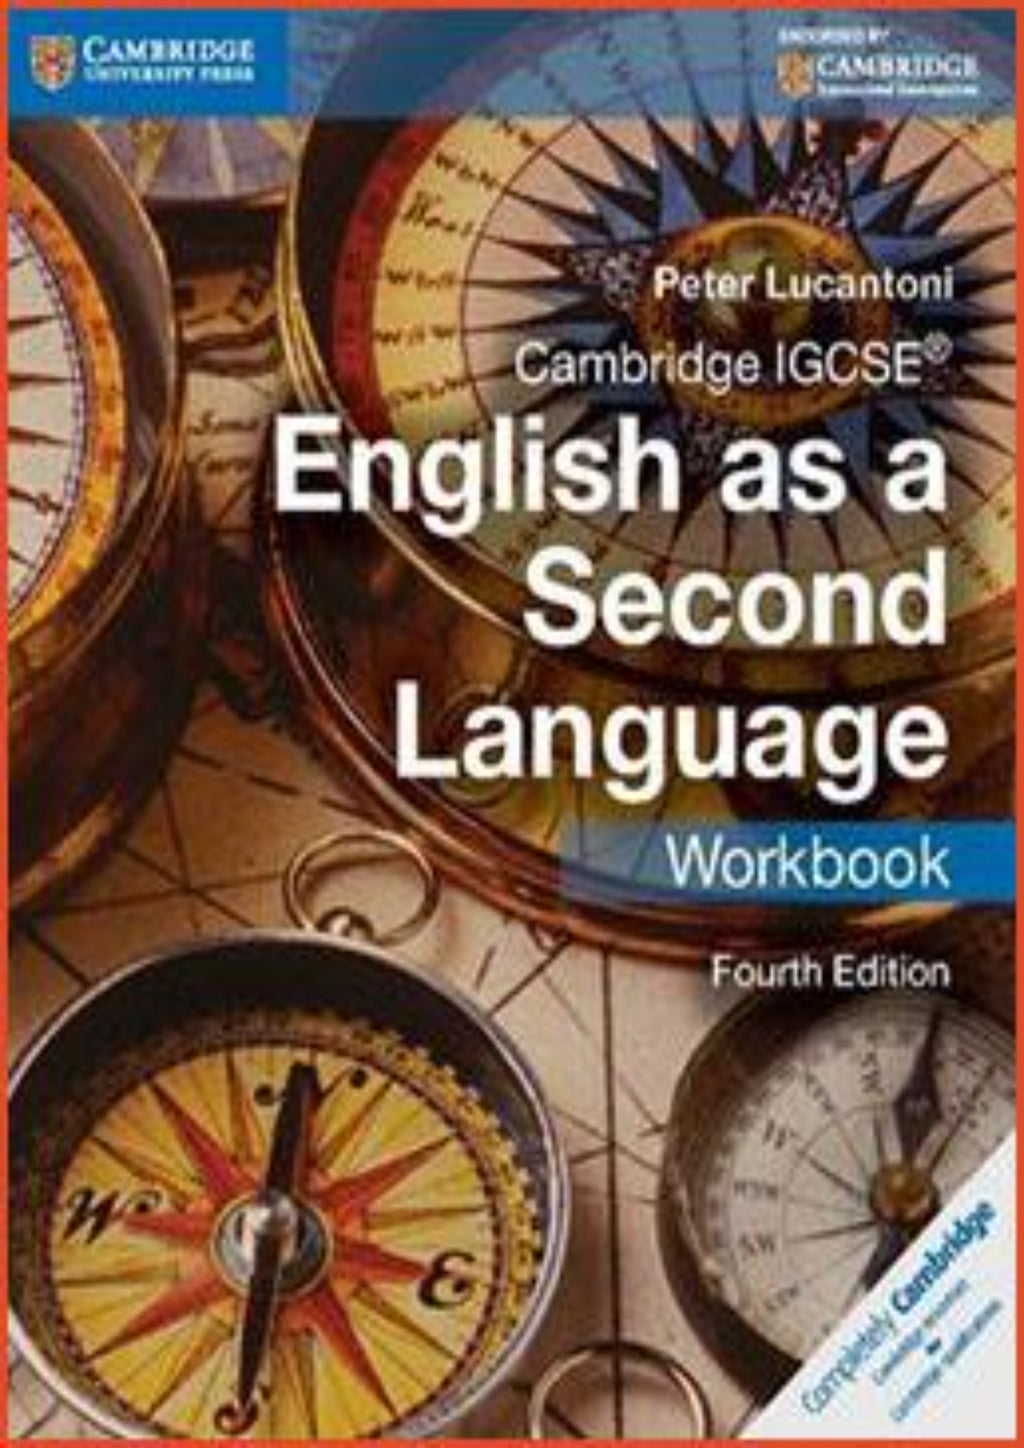 Cambridge IGCSE English as a Second Language (0510) Workbook (4th Ed)